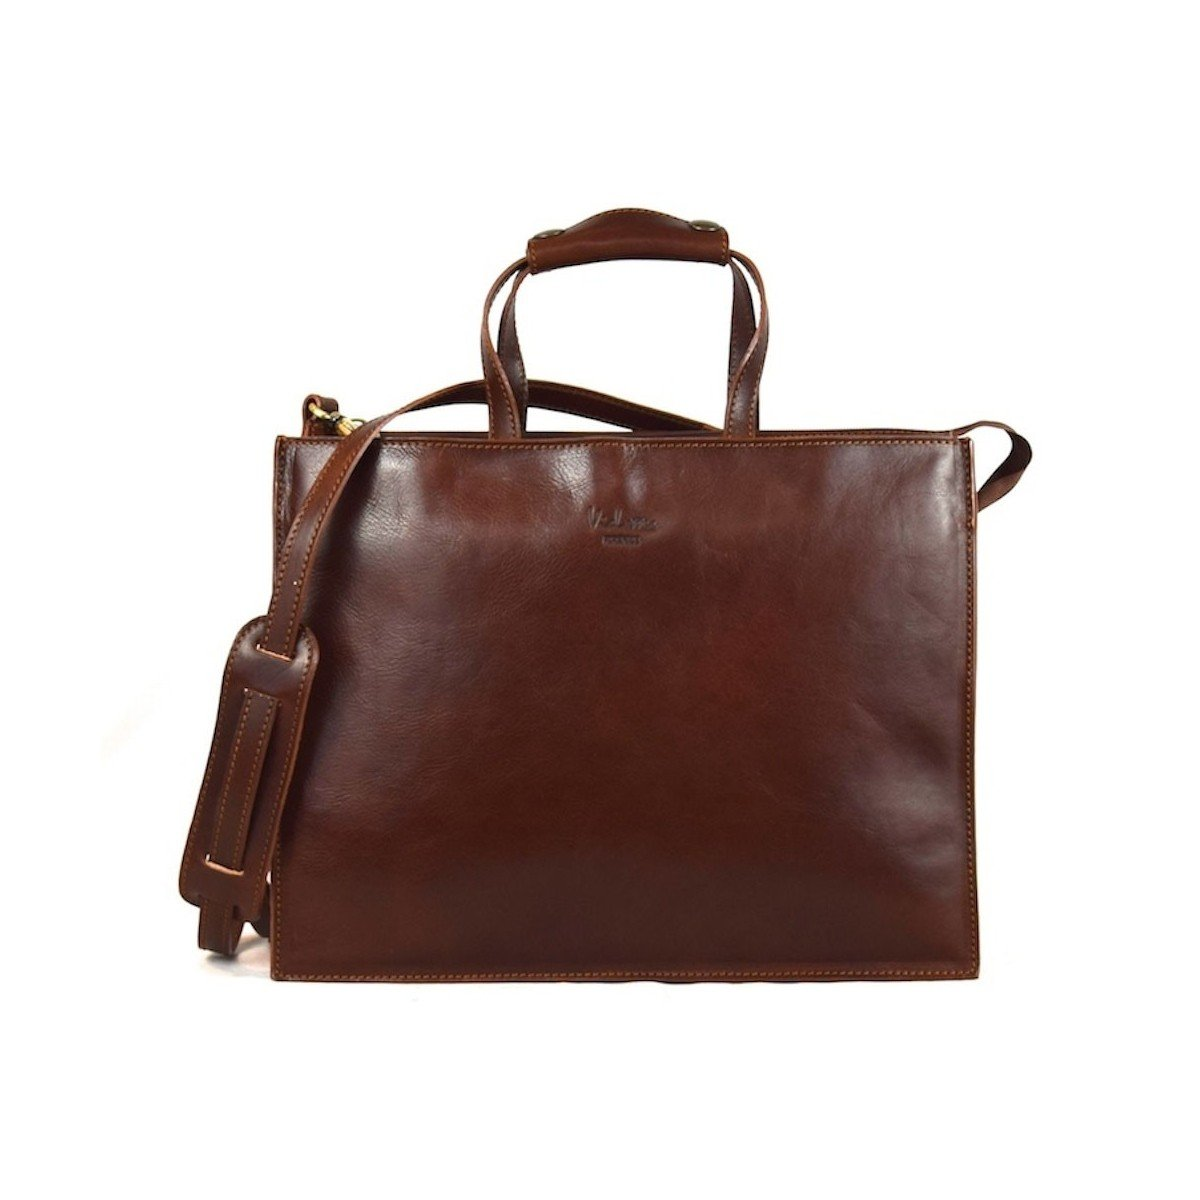 Made In Italy Women Business Leather Bag- Aletheia Color Brown - Business Bag   B018W36Z78